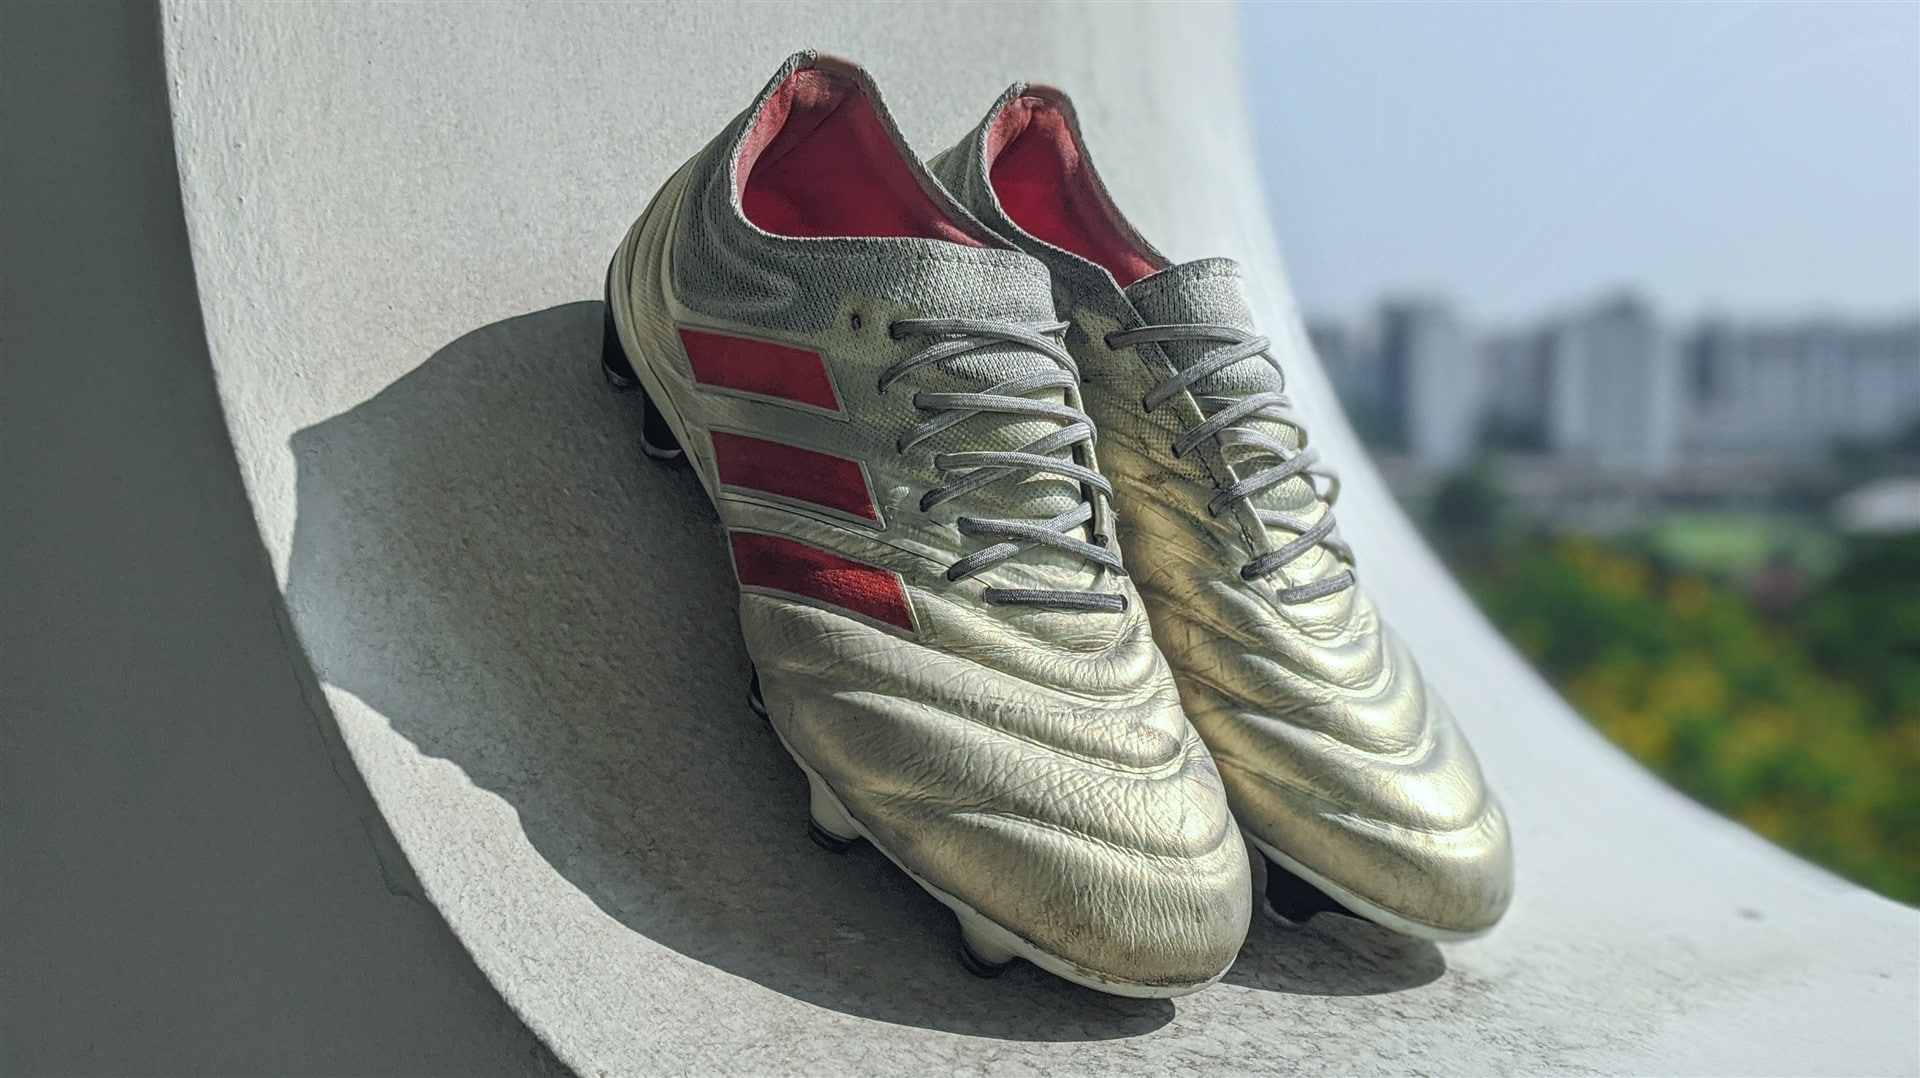 adidas copa 19.1 post hype review football boot soccer cleats (3)